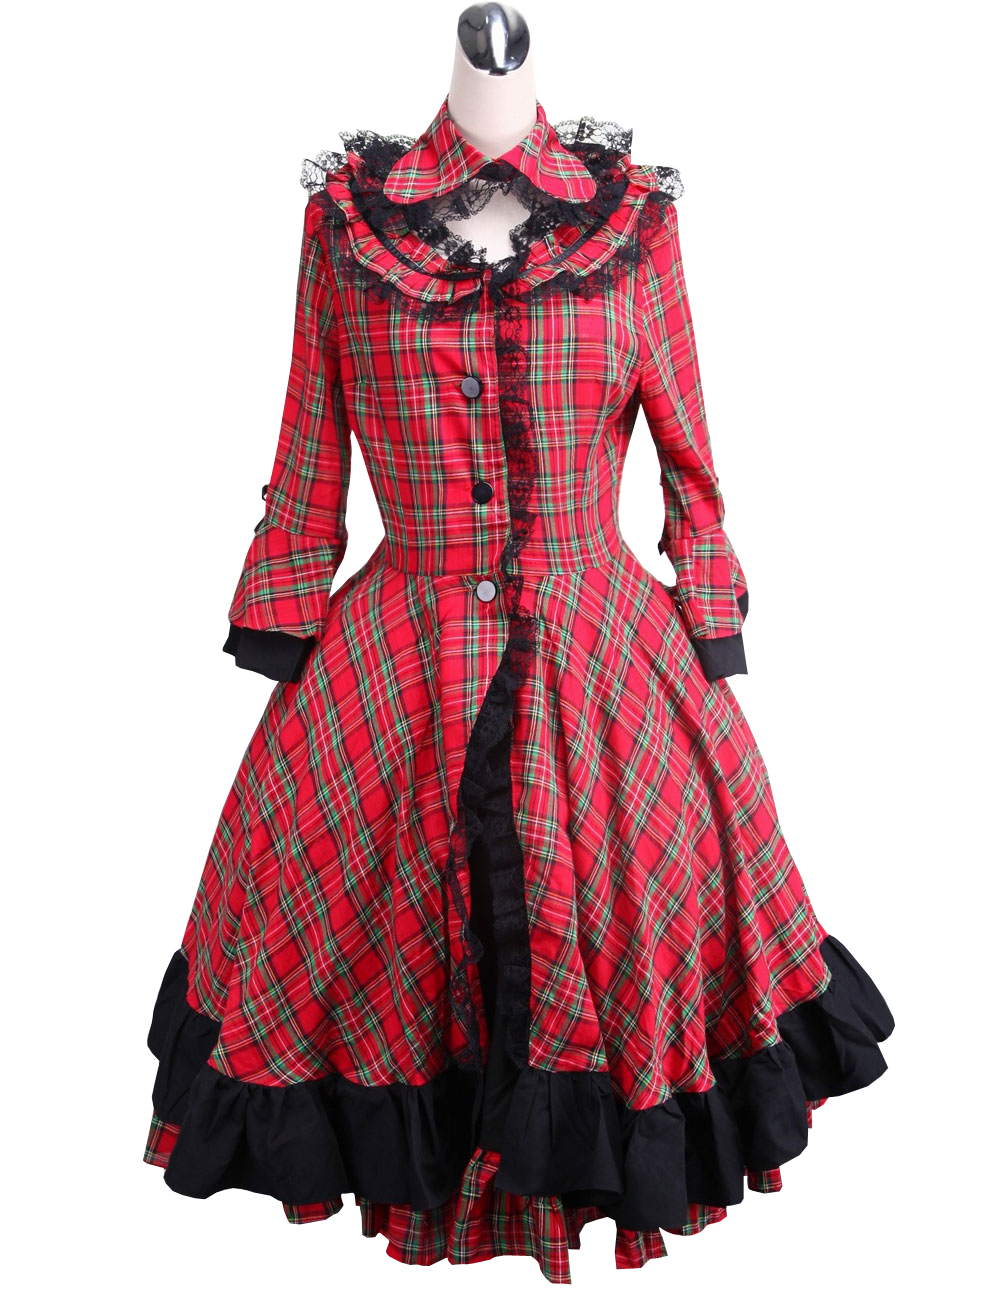 Primary image for ZeroMart Red Cotton Plaid Ruffle Lace Vintage Victorian School Lolita Dress